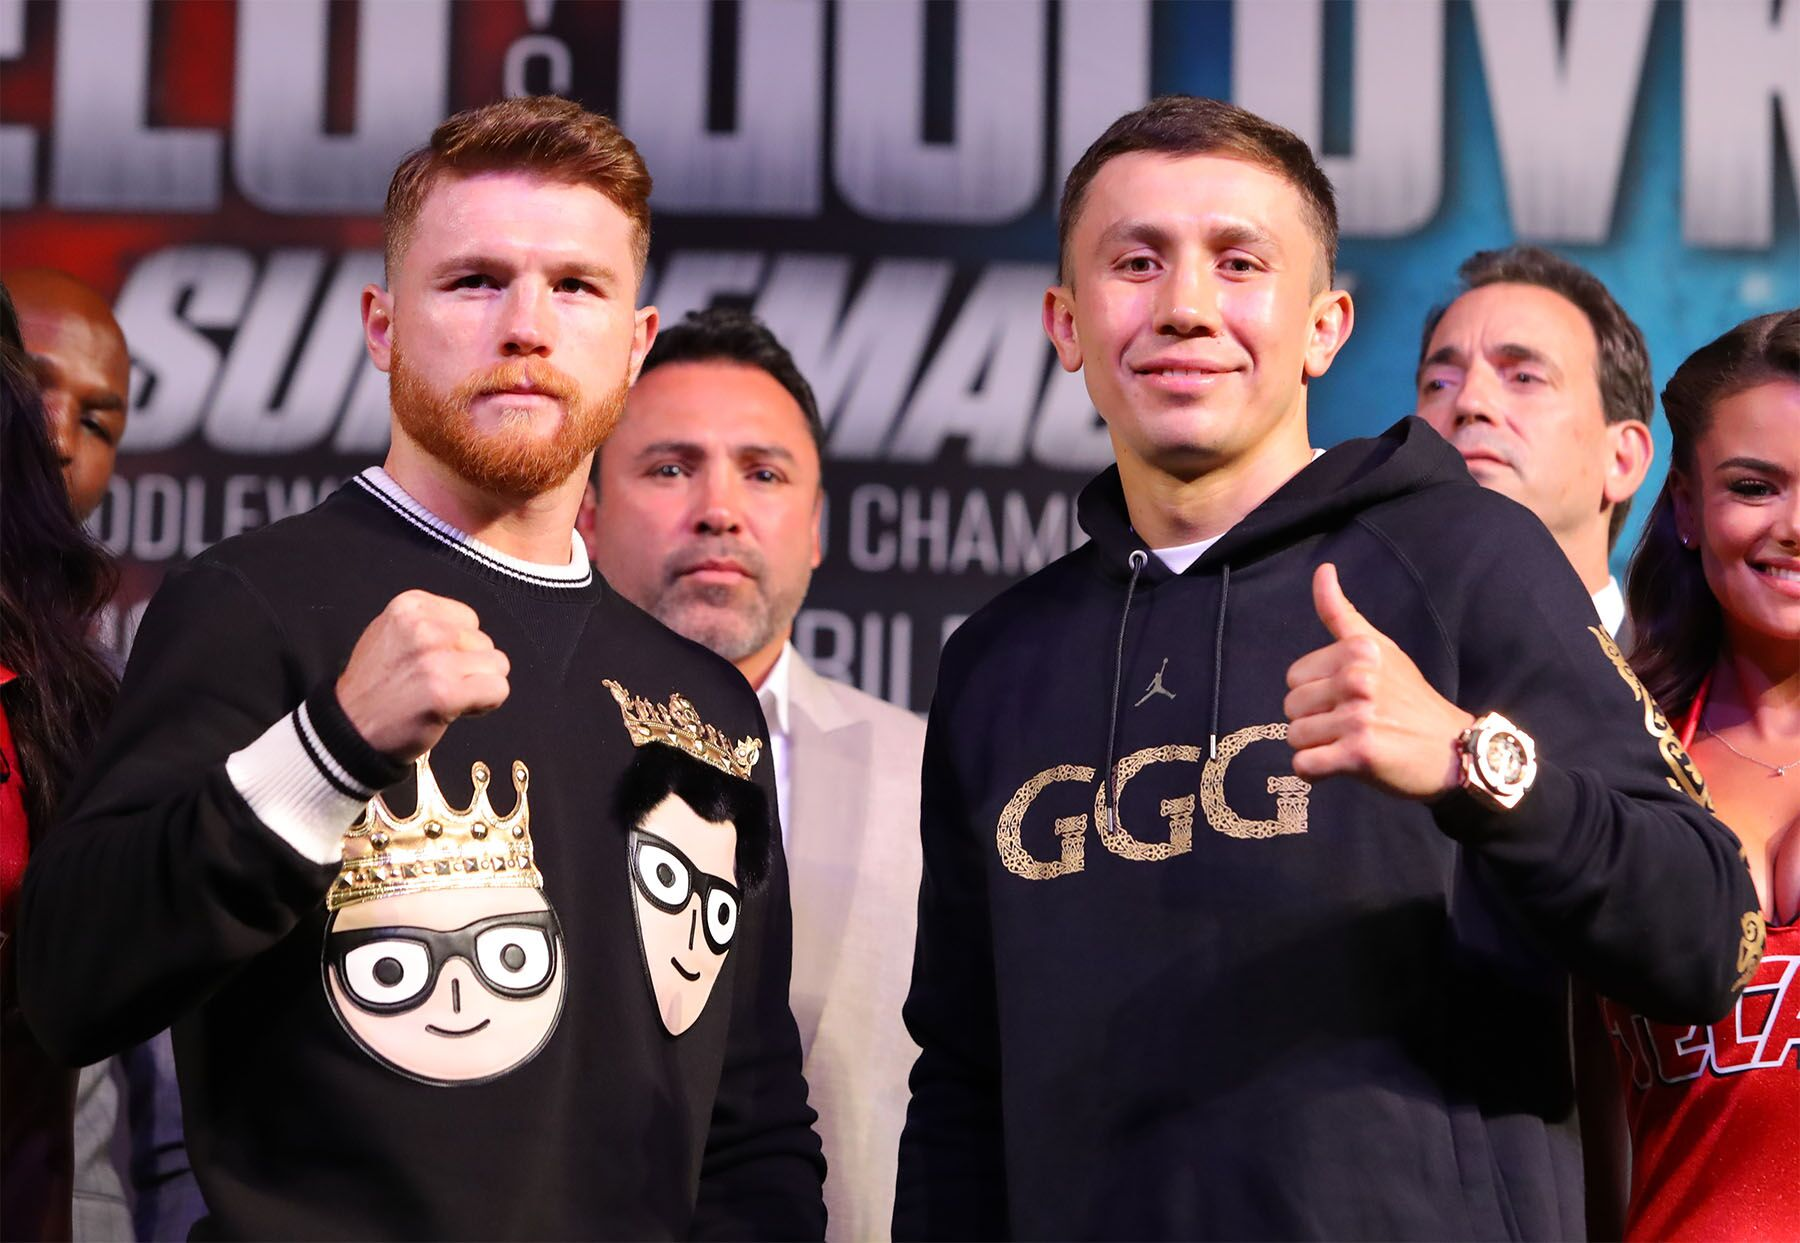 Where to watch the Canelo-GGG fight in Pensacola